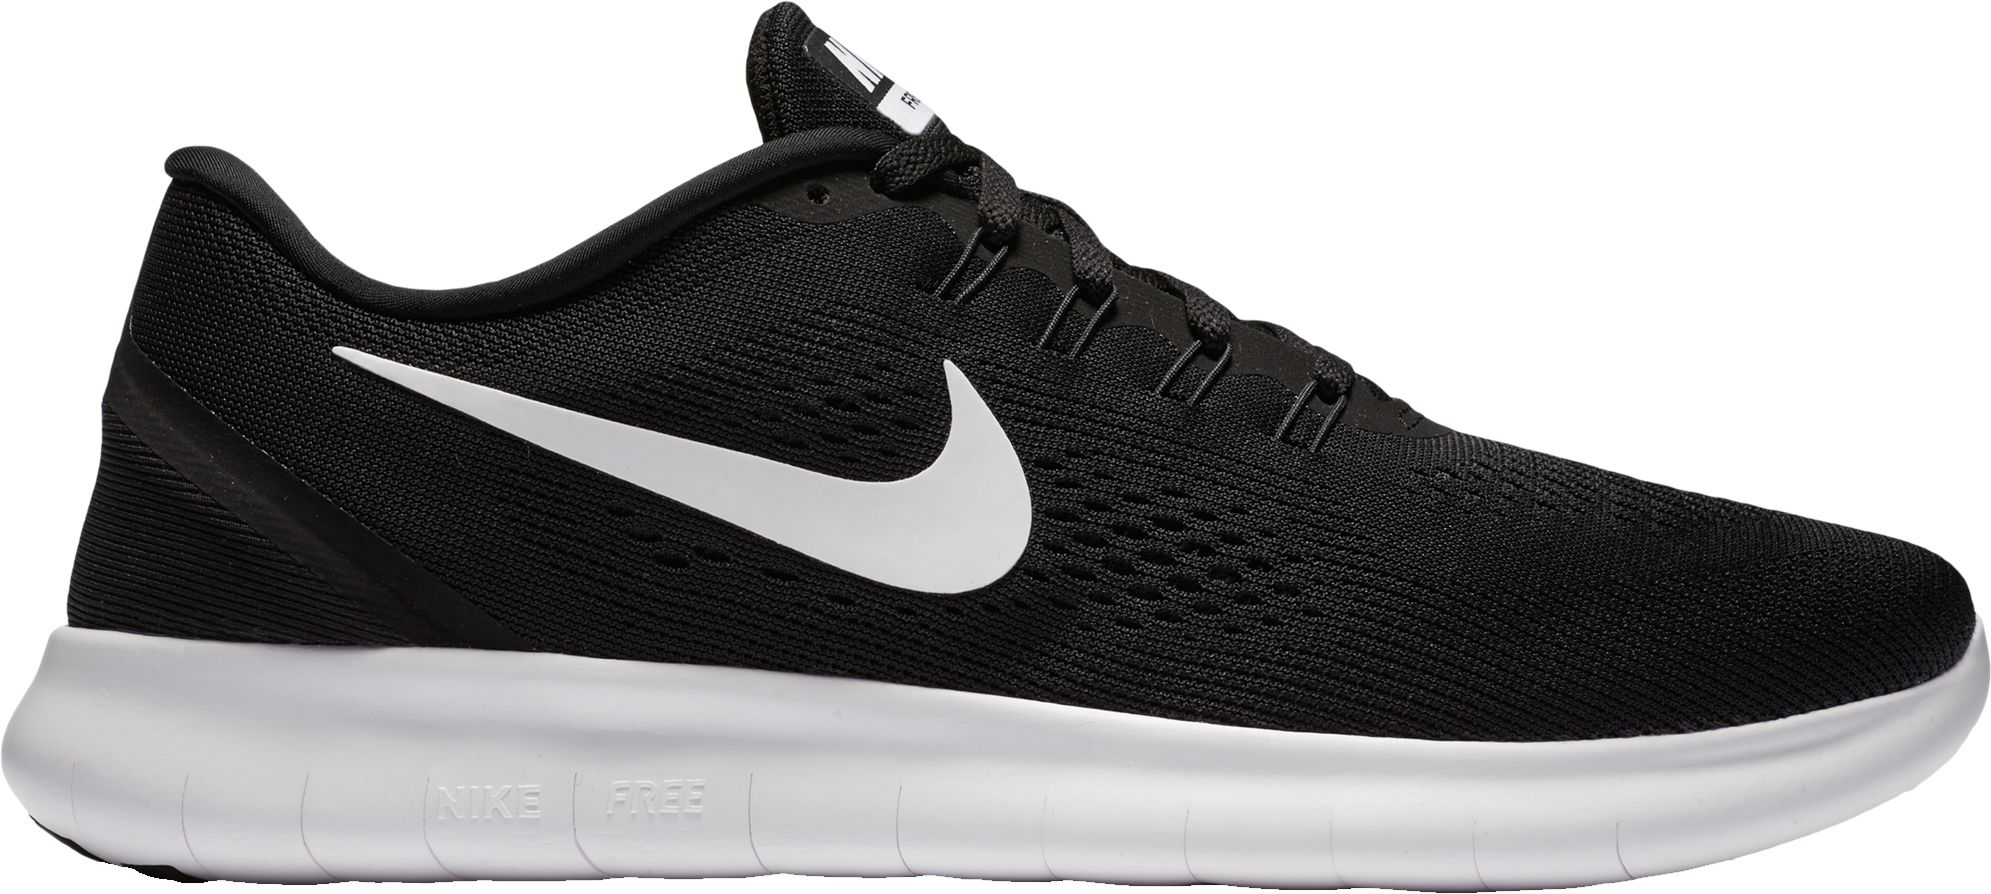 nike free running shoes mens